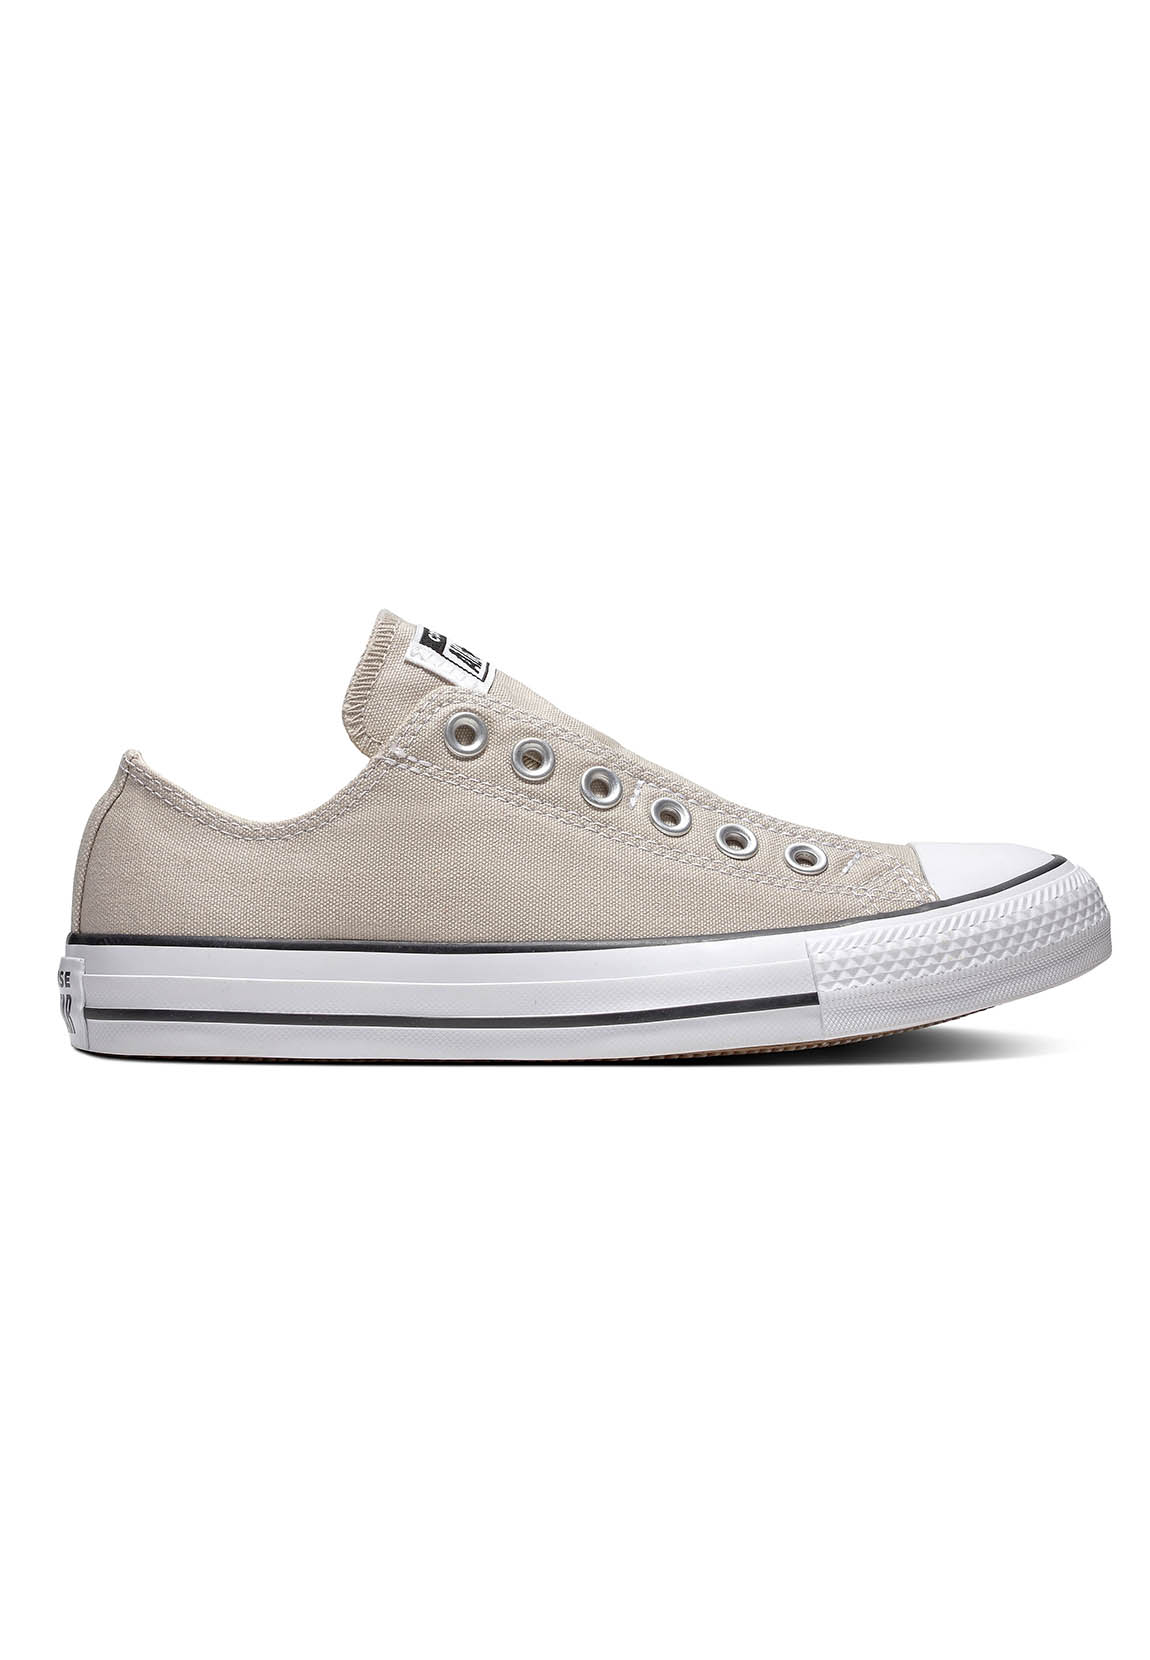 Converse Chucks CT AS Slip 1V018 Slipper Schuhe creme weiss